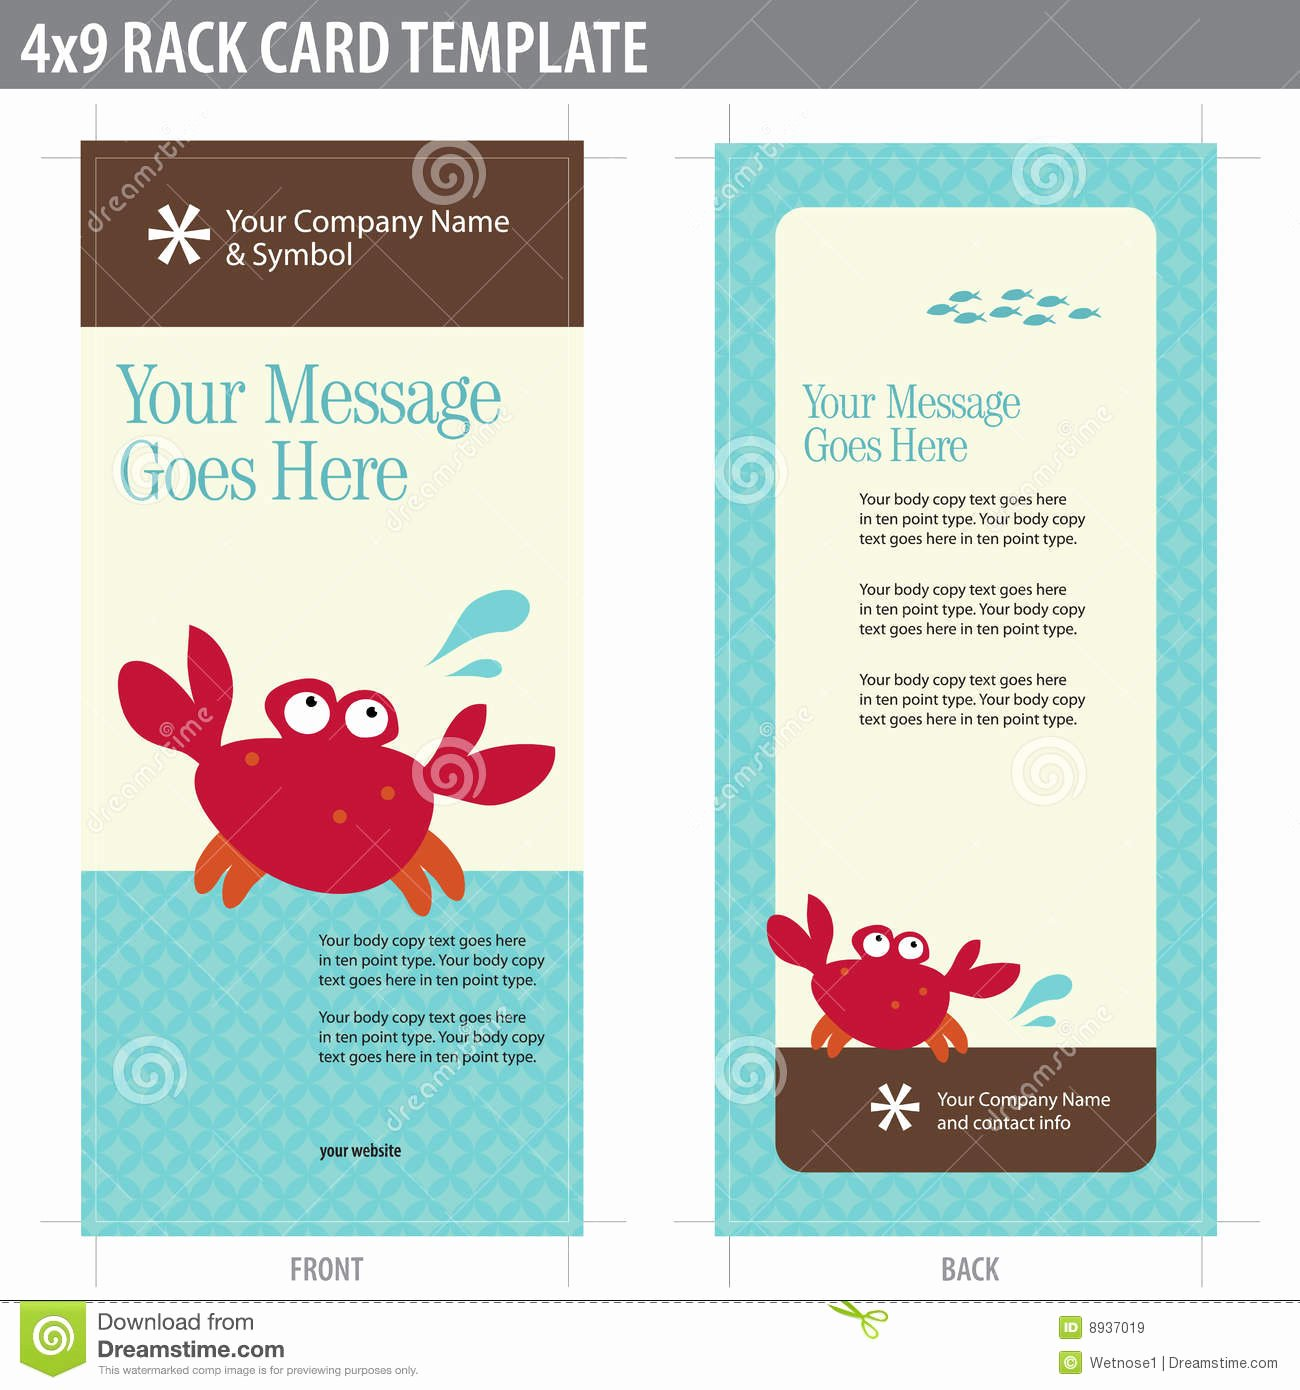 Free Rack Card Template Elegant 4x9 Rack Card Broshure Template Royalty Free Stock